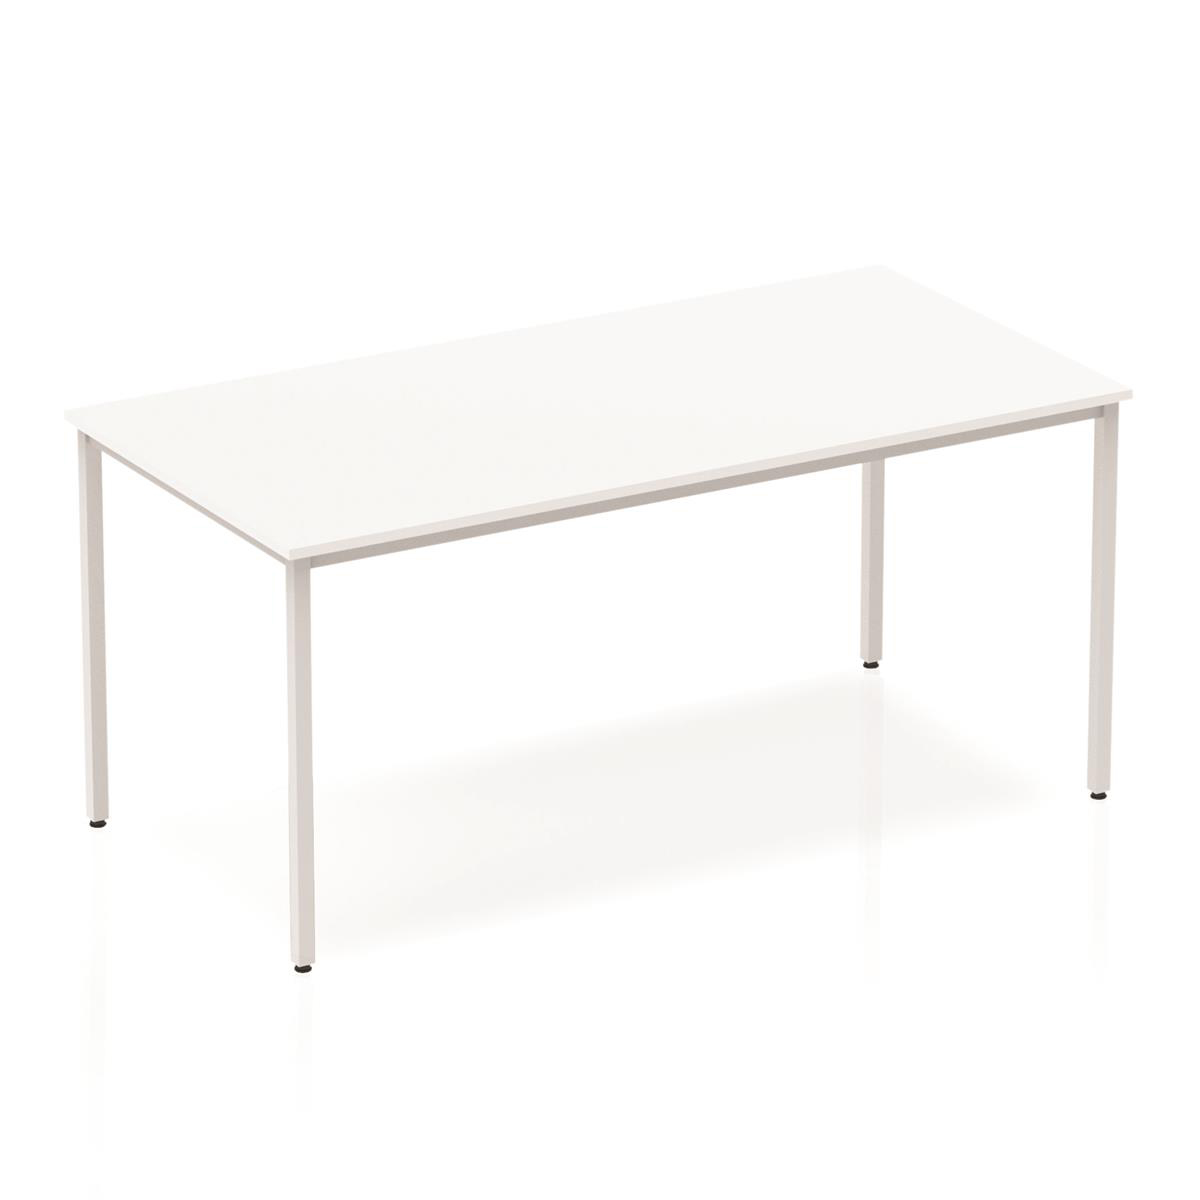 Trexus Rectangular Box Frame Silver Leg Table 1600x800mm White Ref BF00117